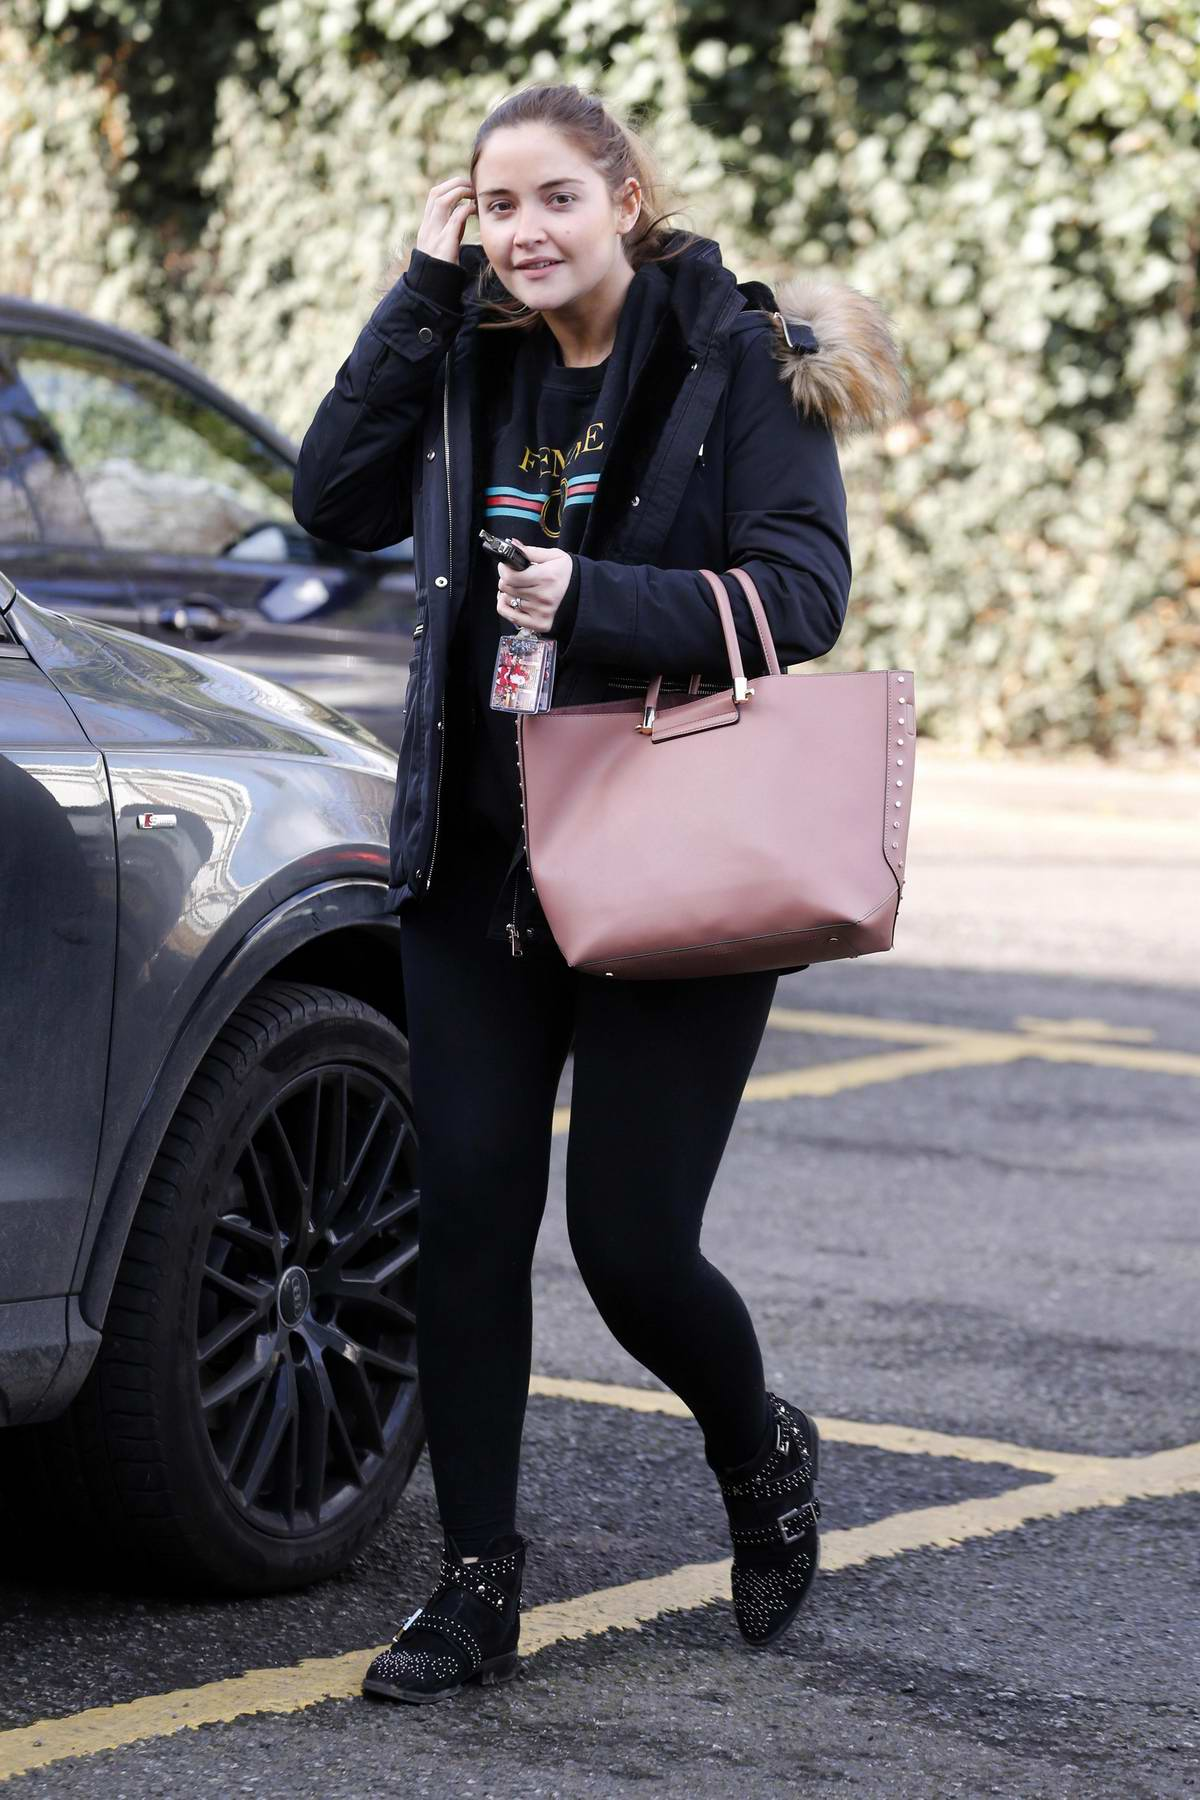 Jacqueline Jossa visits an estate agent's office in London